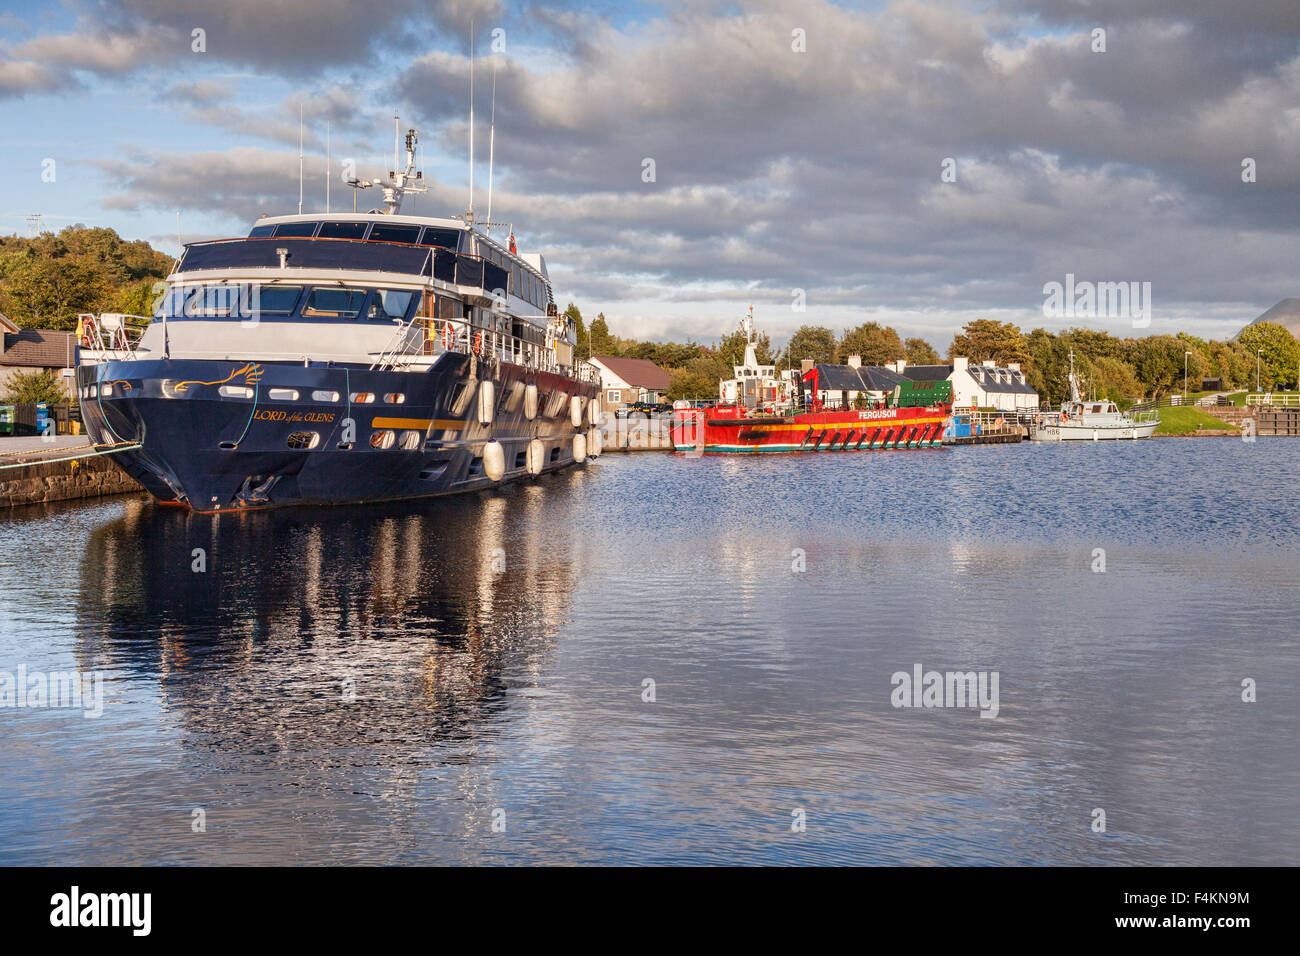 Cruise ship Lord of the Glens in the basin of the Caledonian Canl, near Fort William, Highland, Scotland, UK Stock Photo